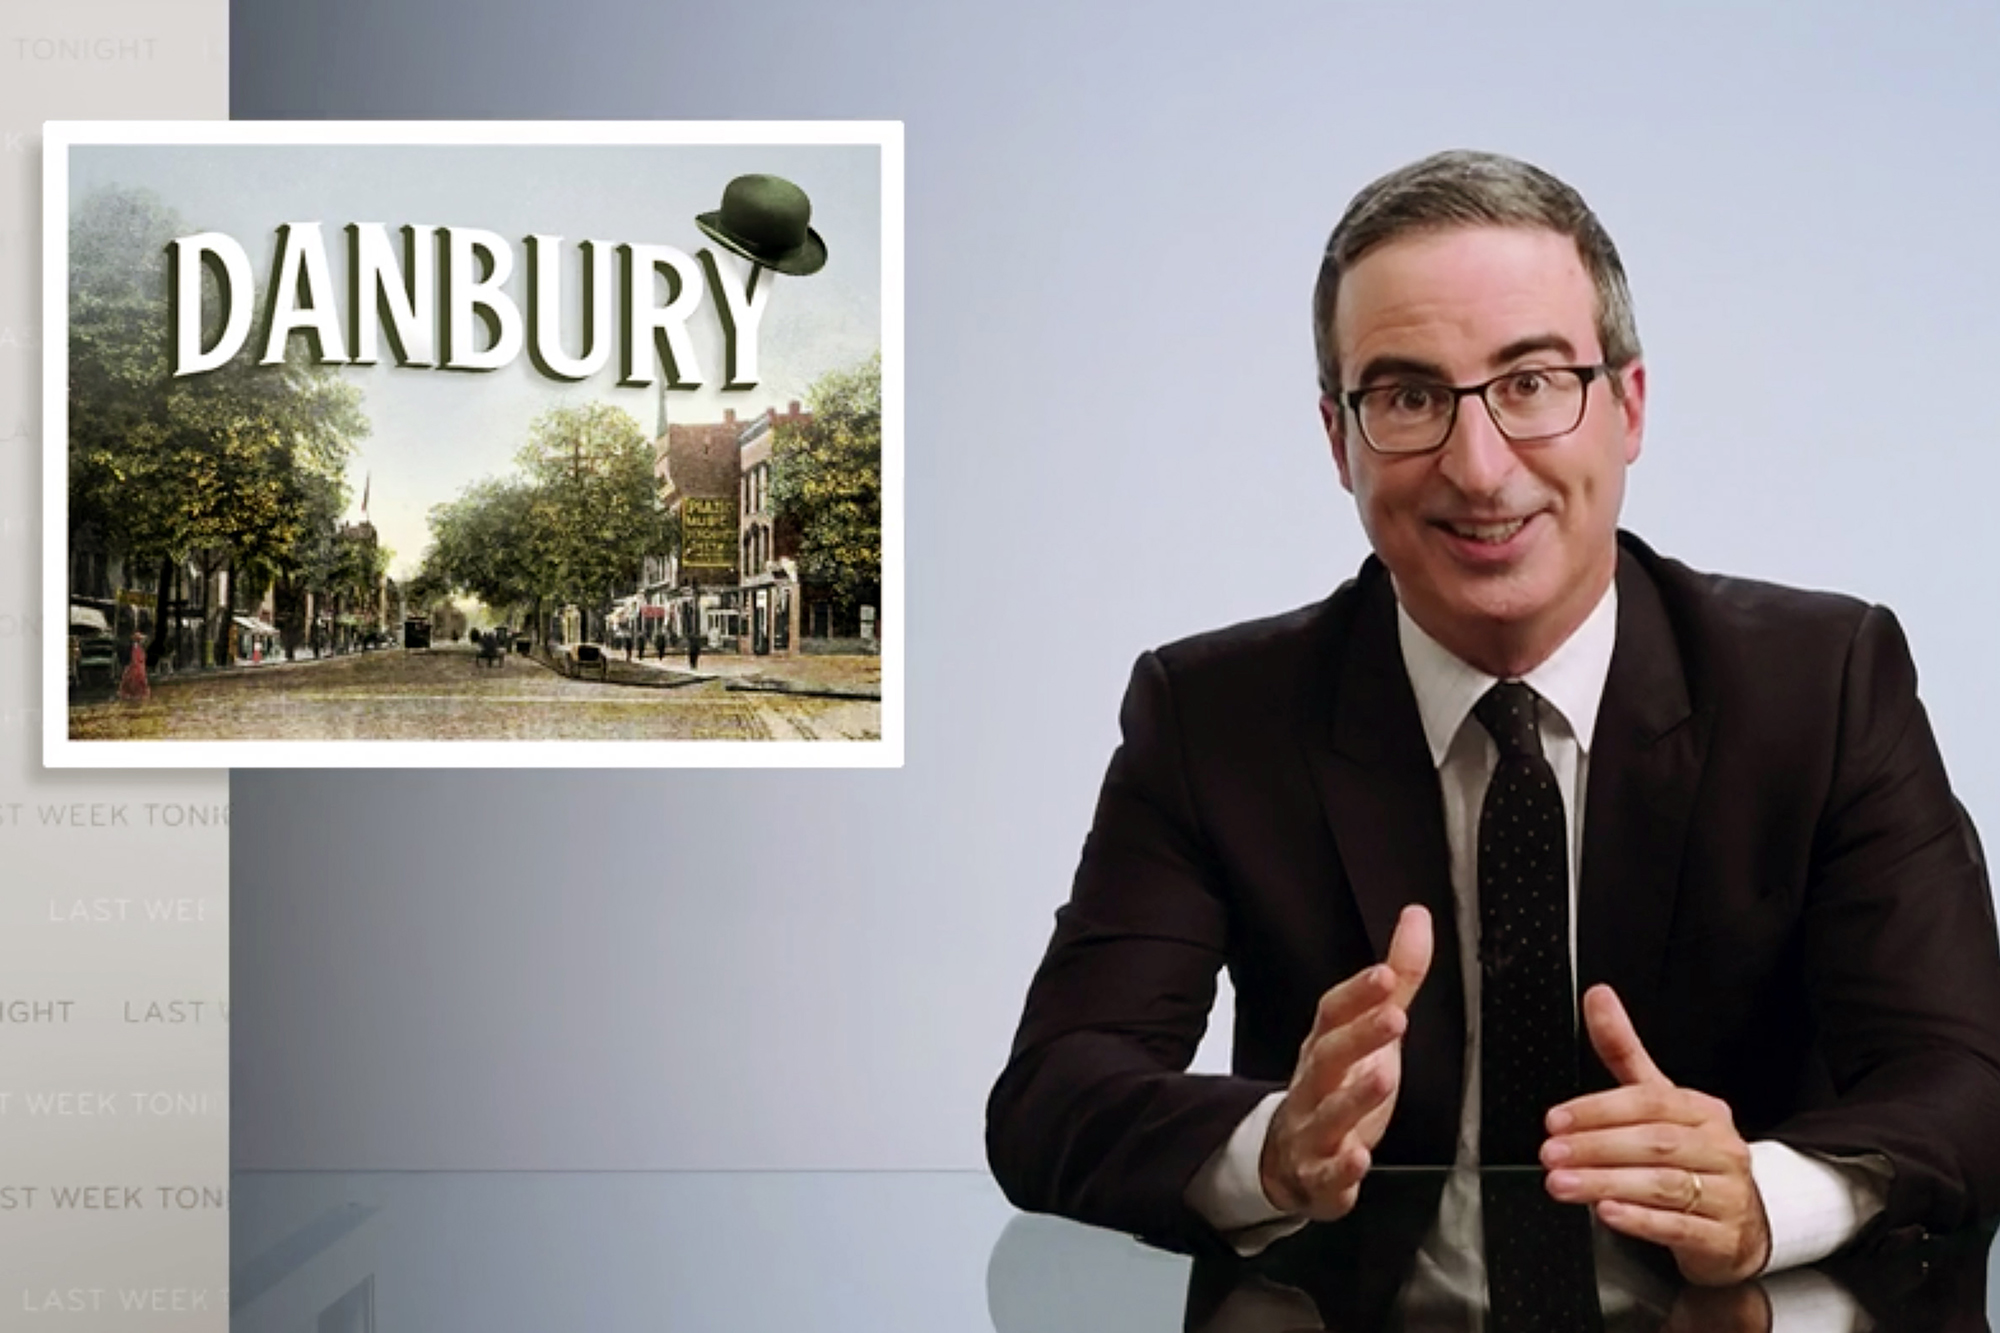 Danbury, CT officially named its sewage plant after John Oliver